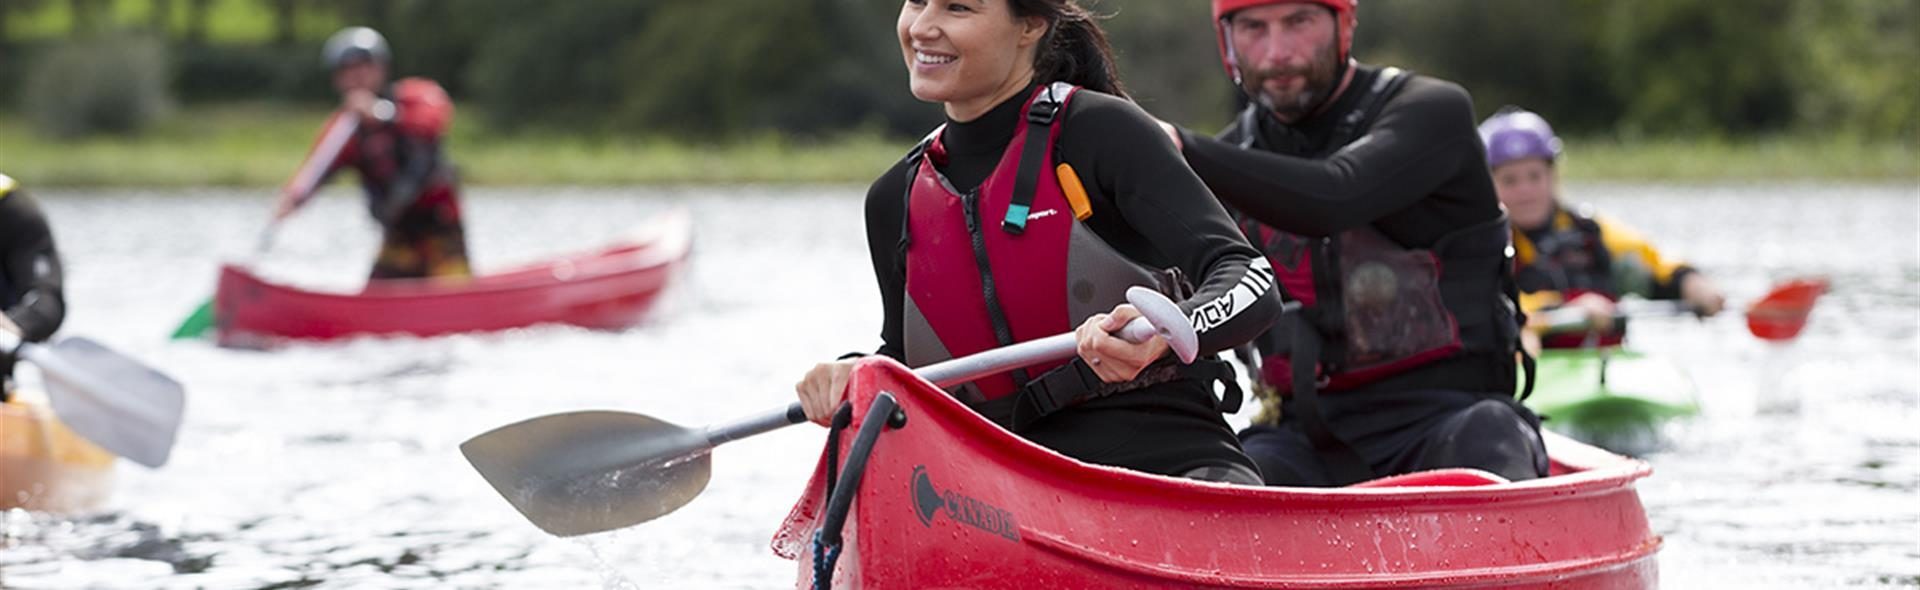 10% OFF SUP, Canoe or Kayak Trip to Devenish Island image